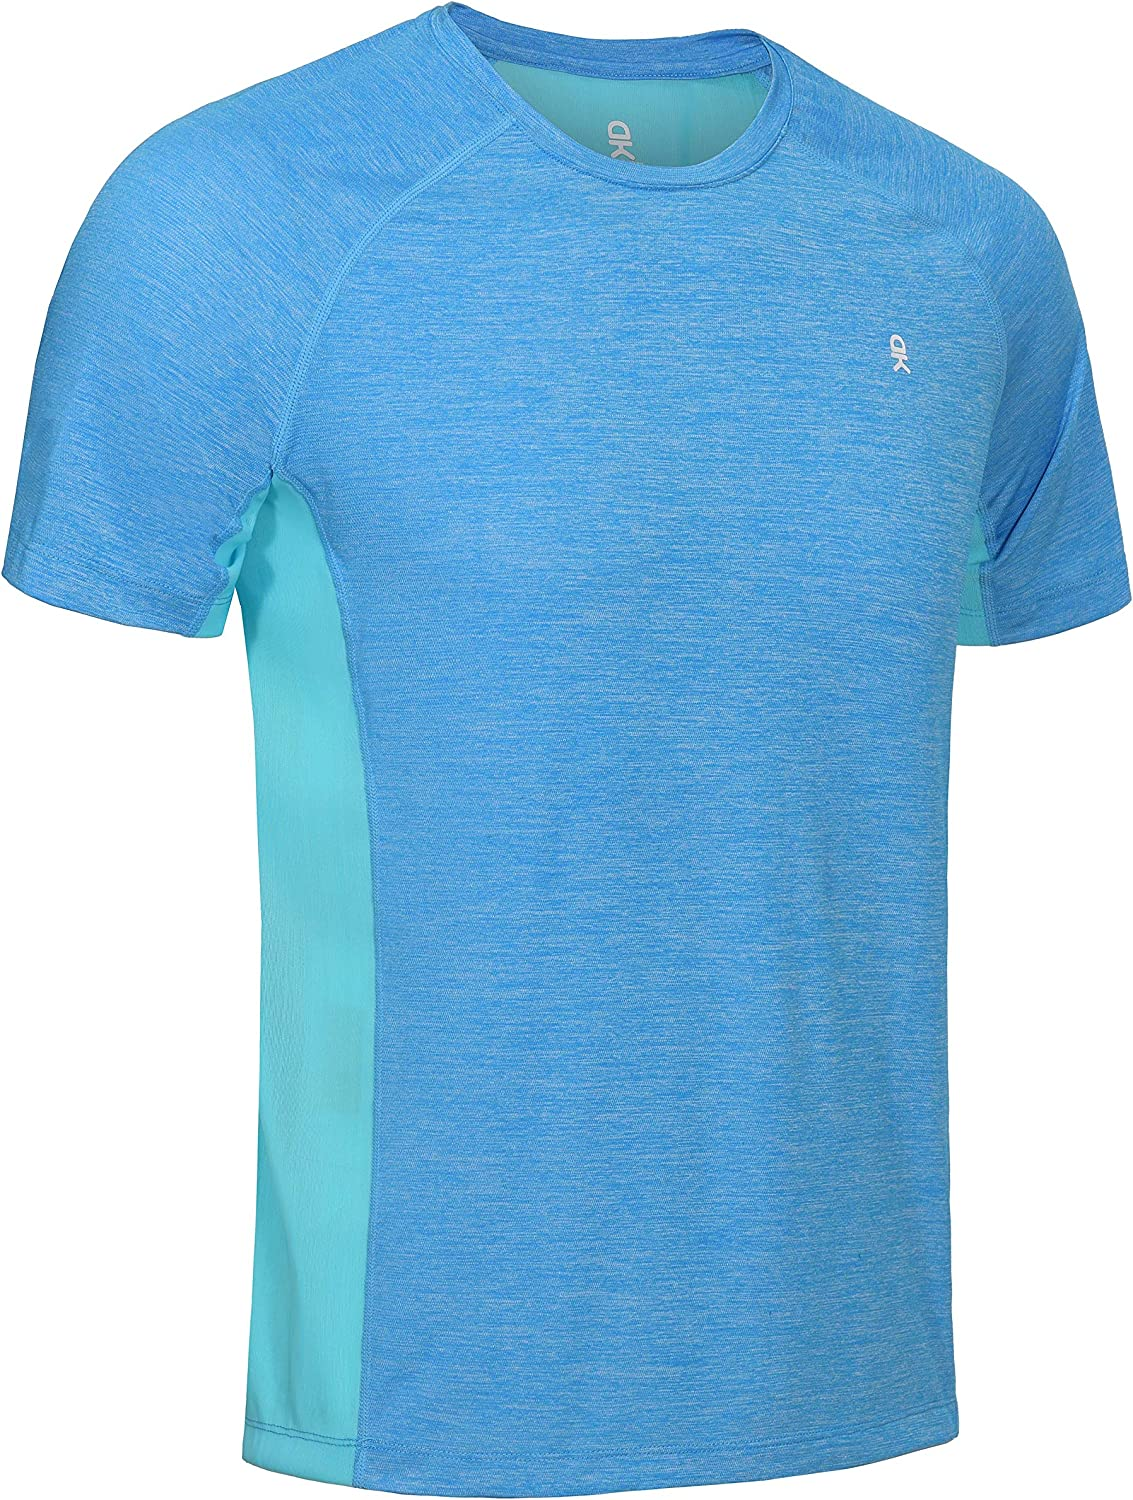 Little Donkey Andy Men's Cool Quick Dry Free shipping New Recommendation Sle Shirts Running Short